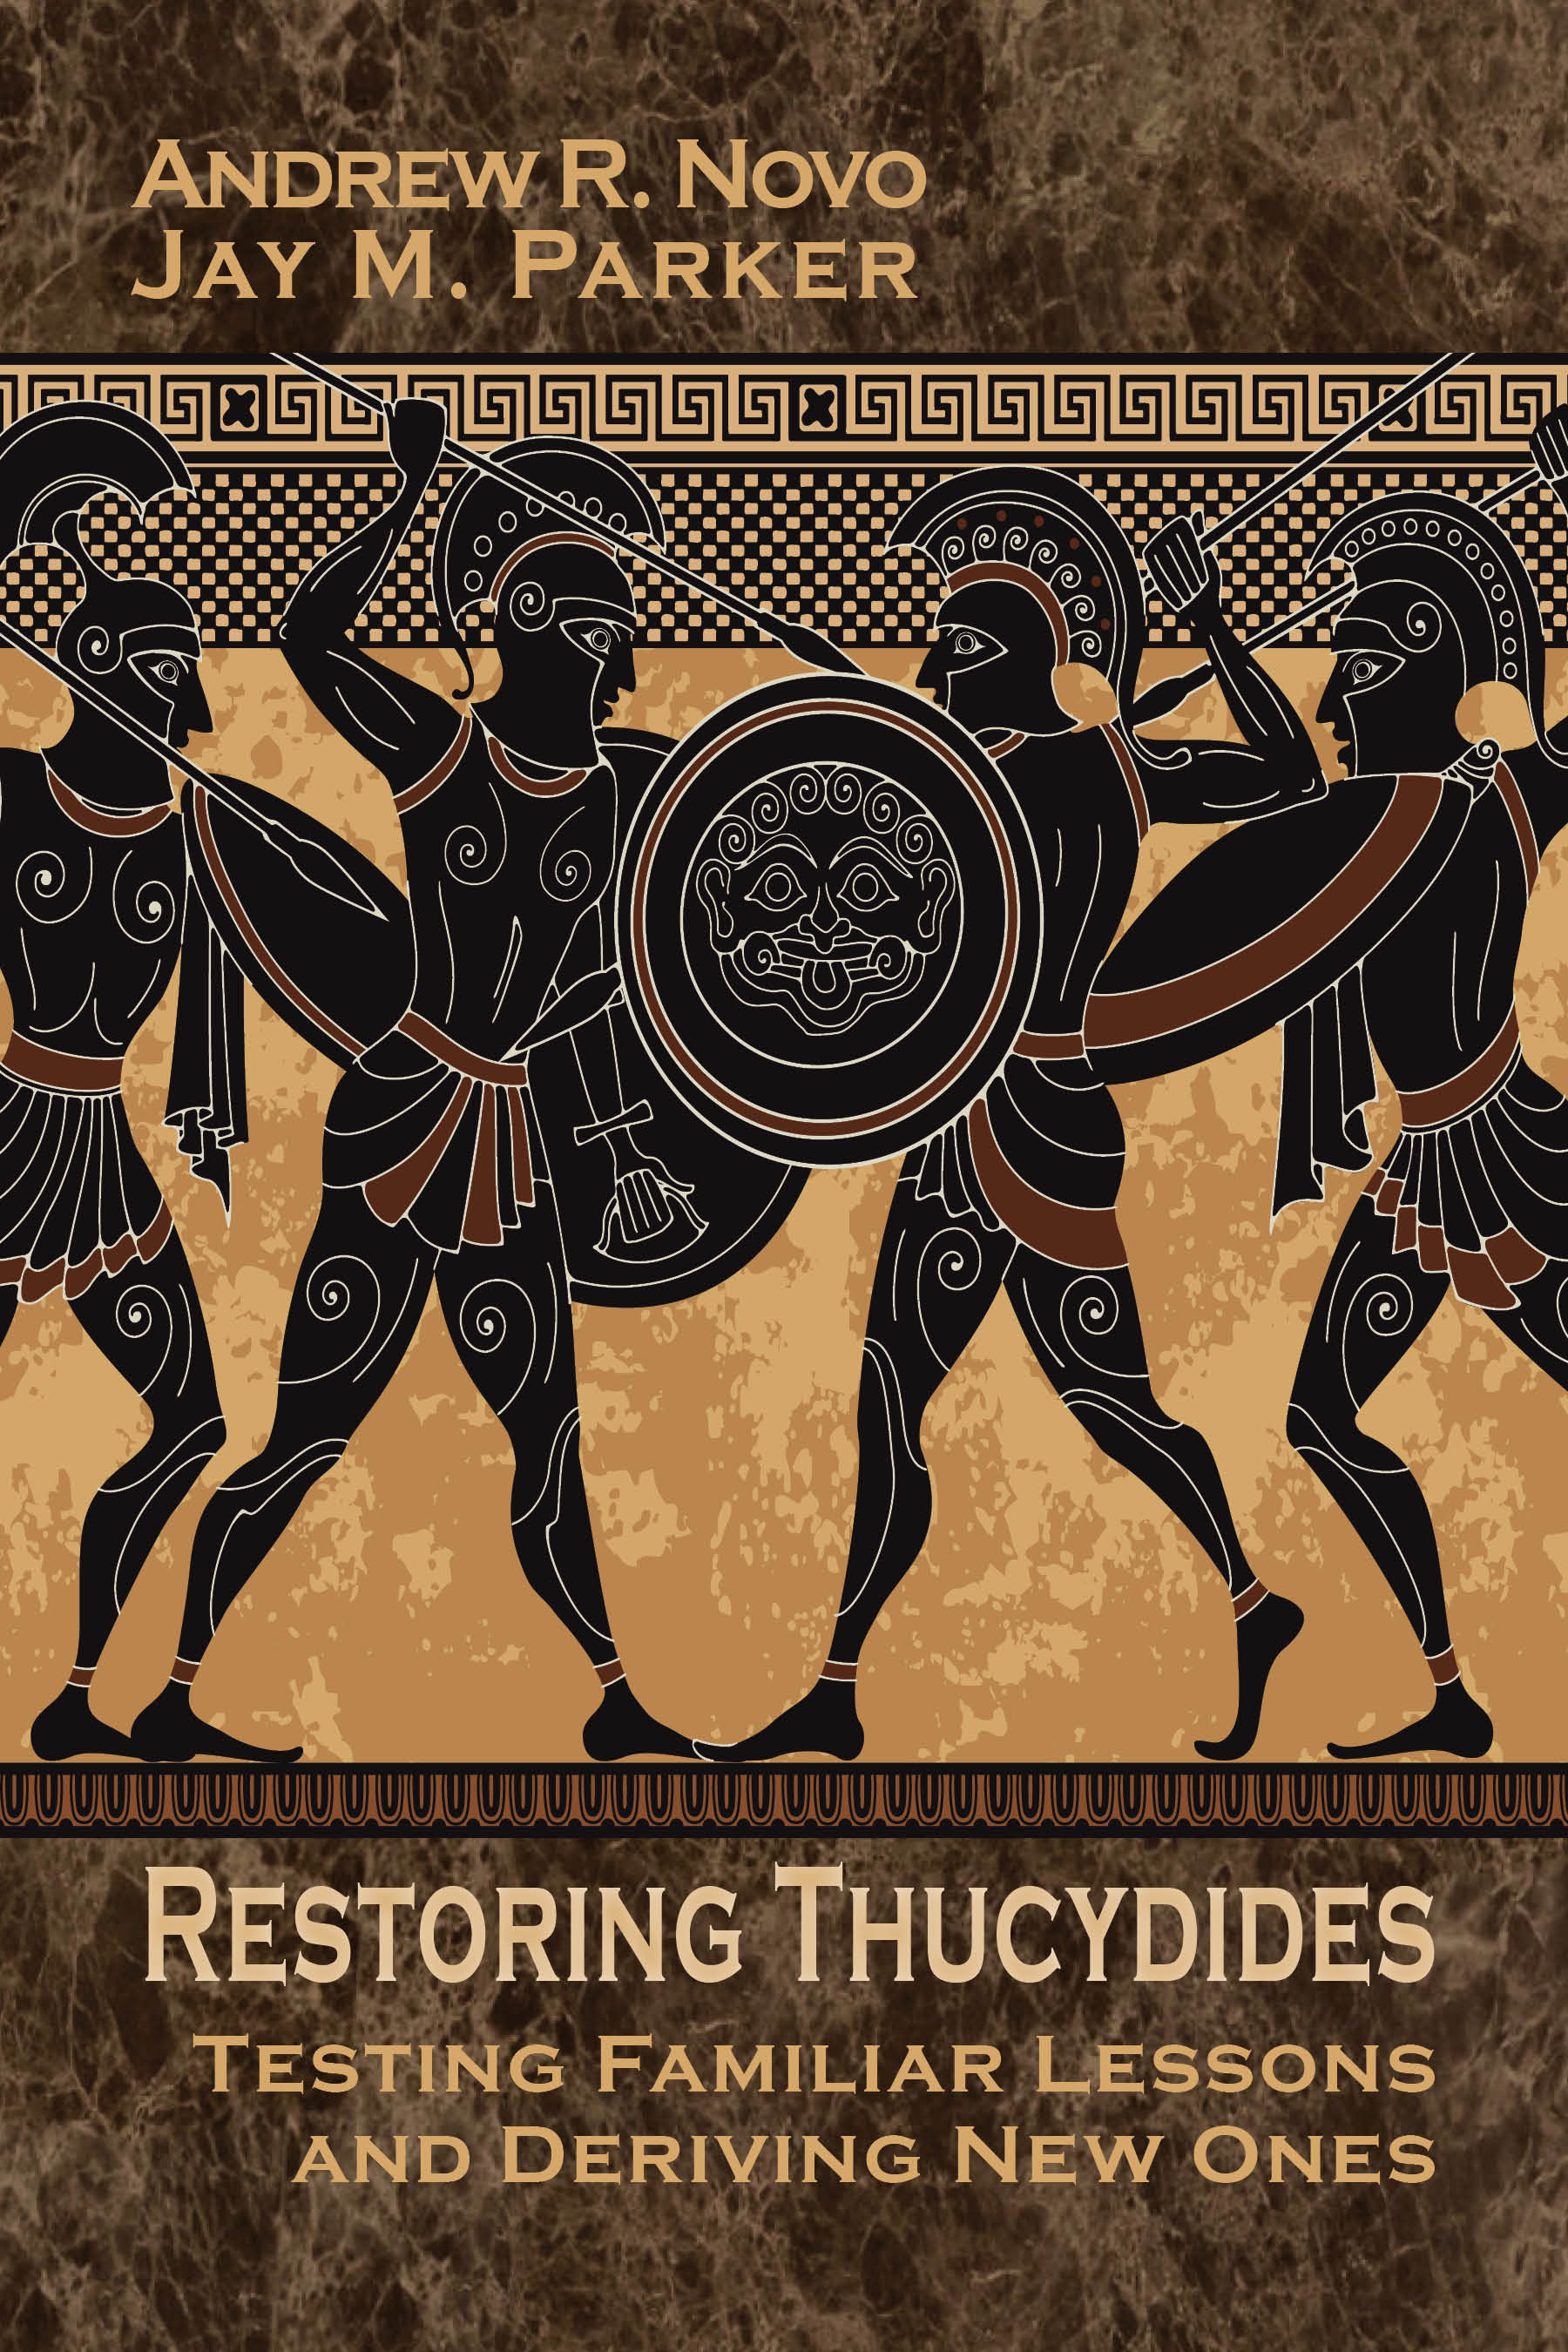 Restoring Thucydides: Testing Familiar Lessons and Deriving New Ones